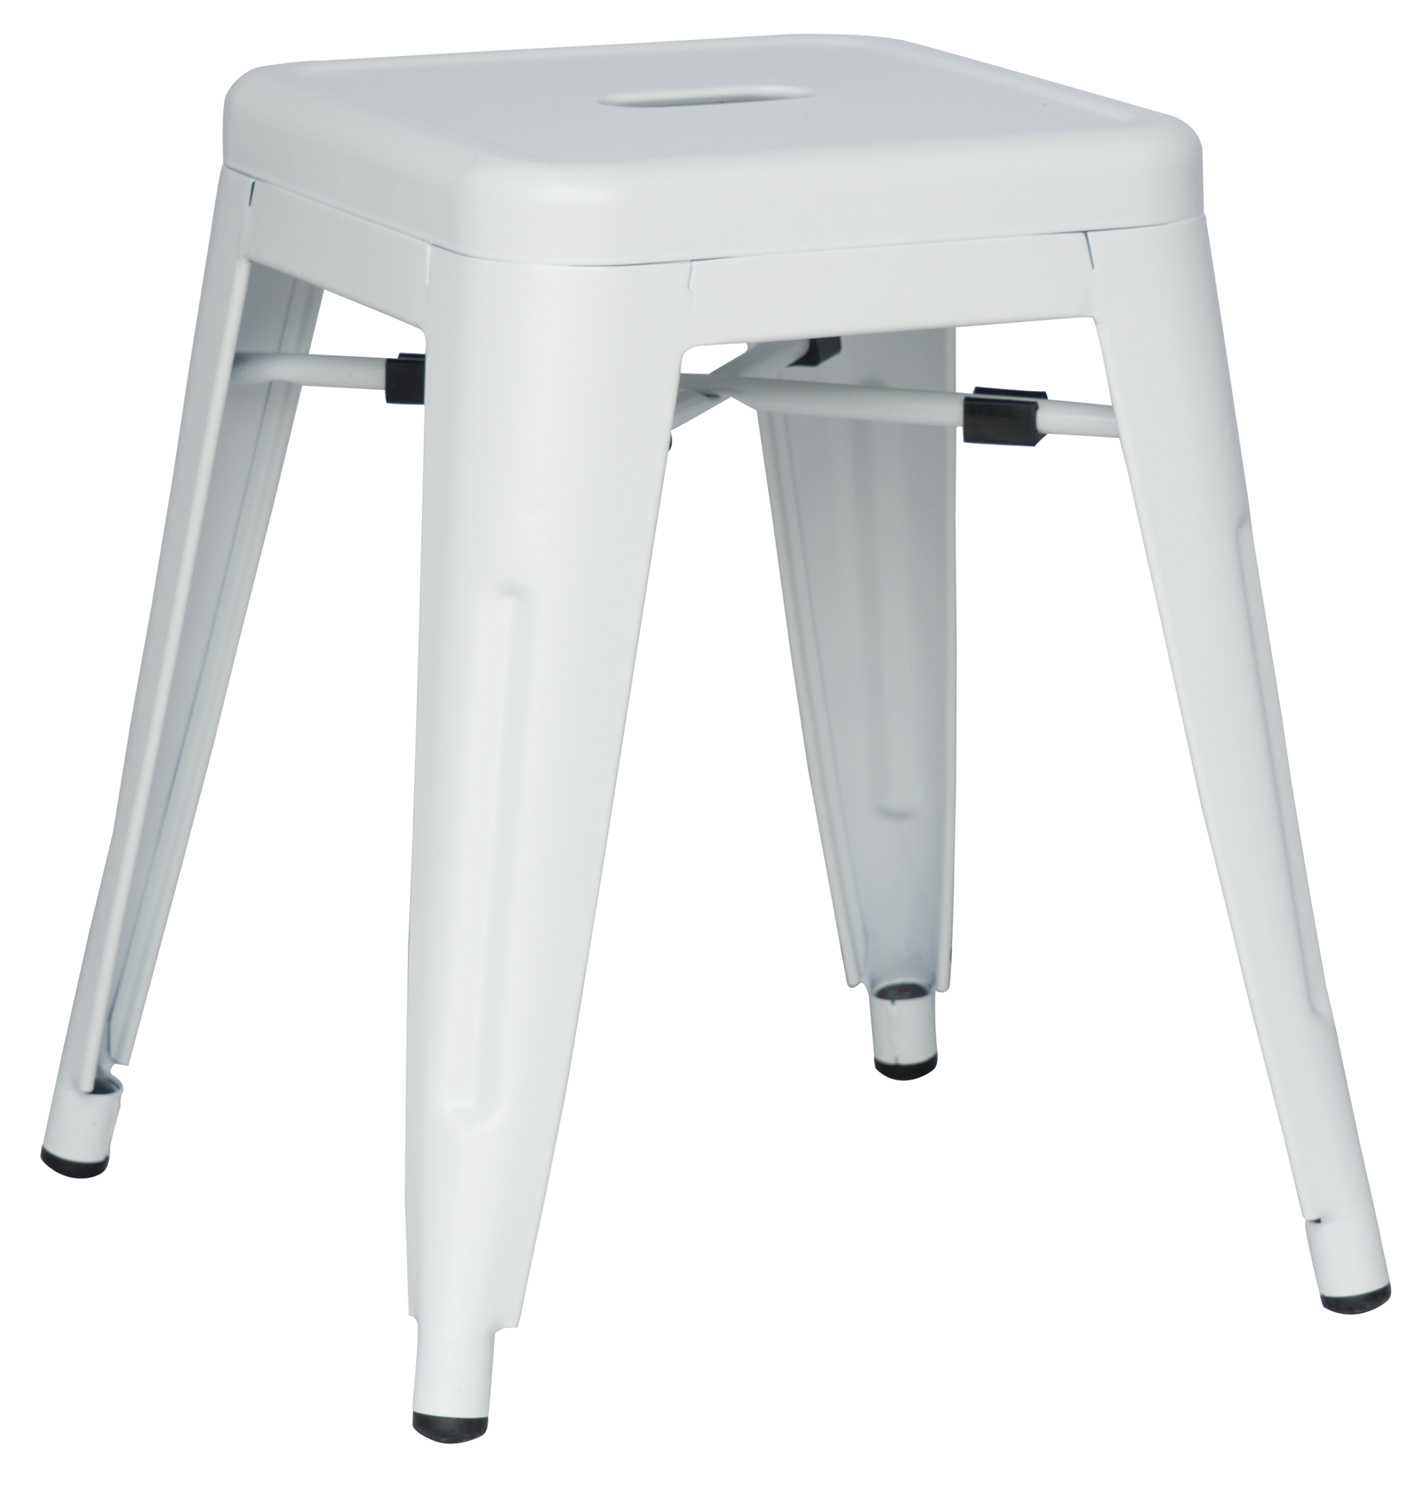 Chintaly Imports 8018 Galvanized Steel Side Chair - White